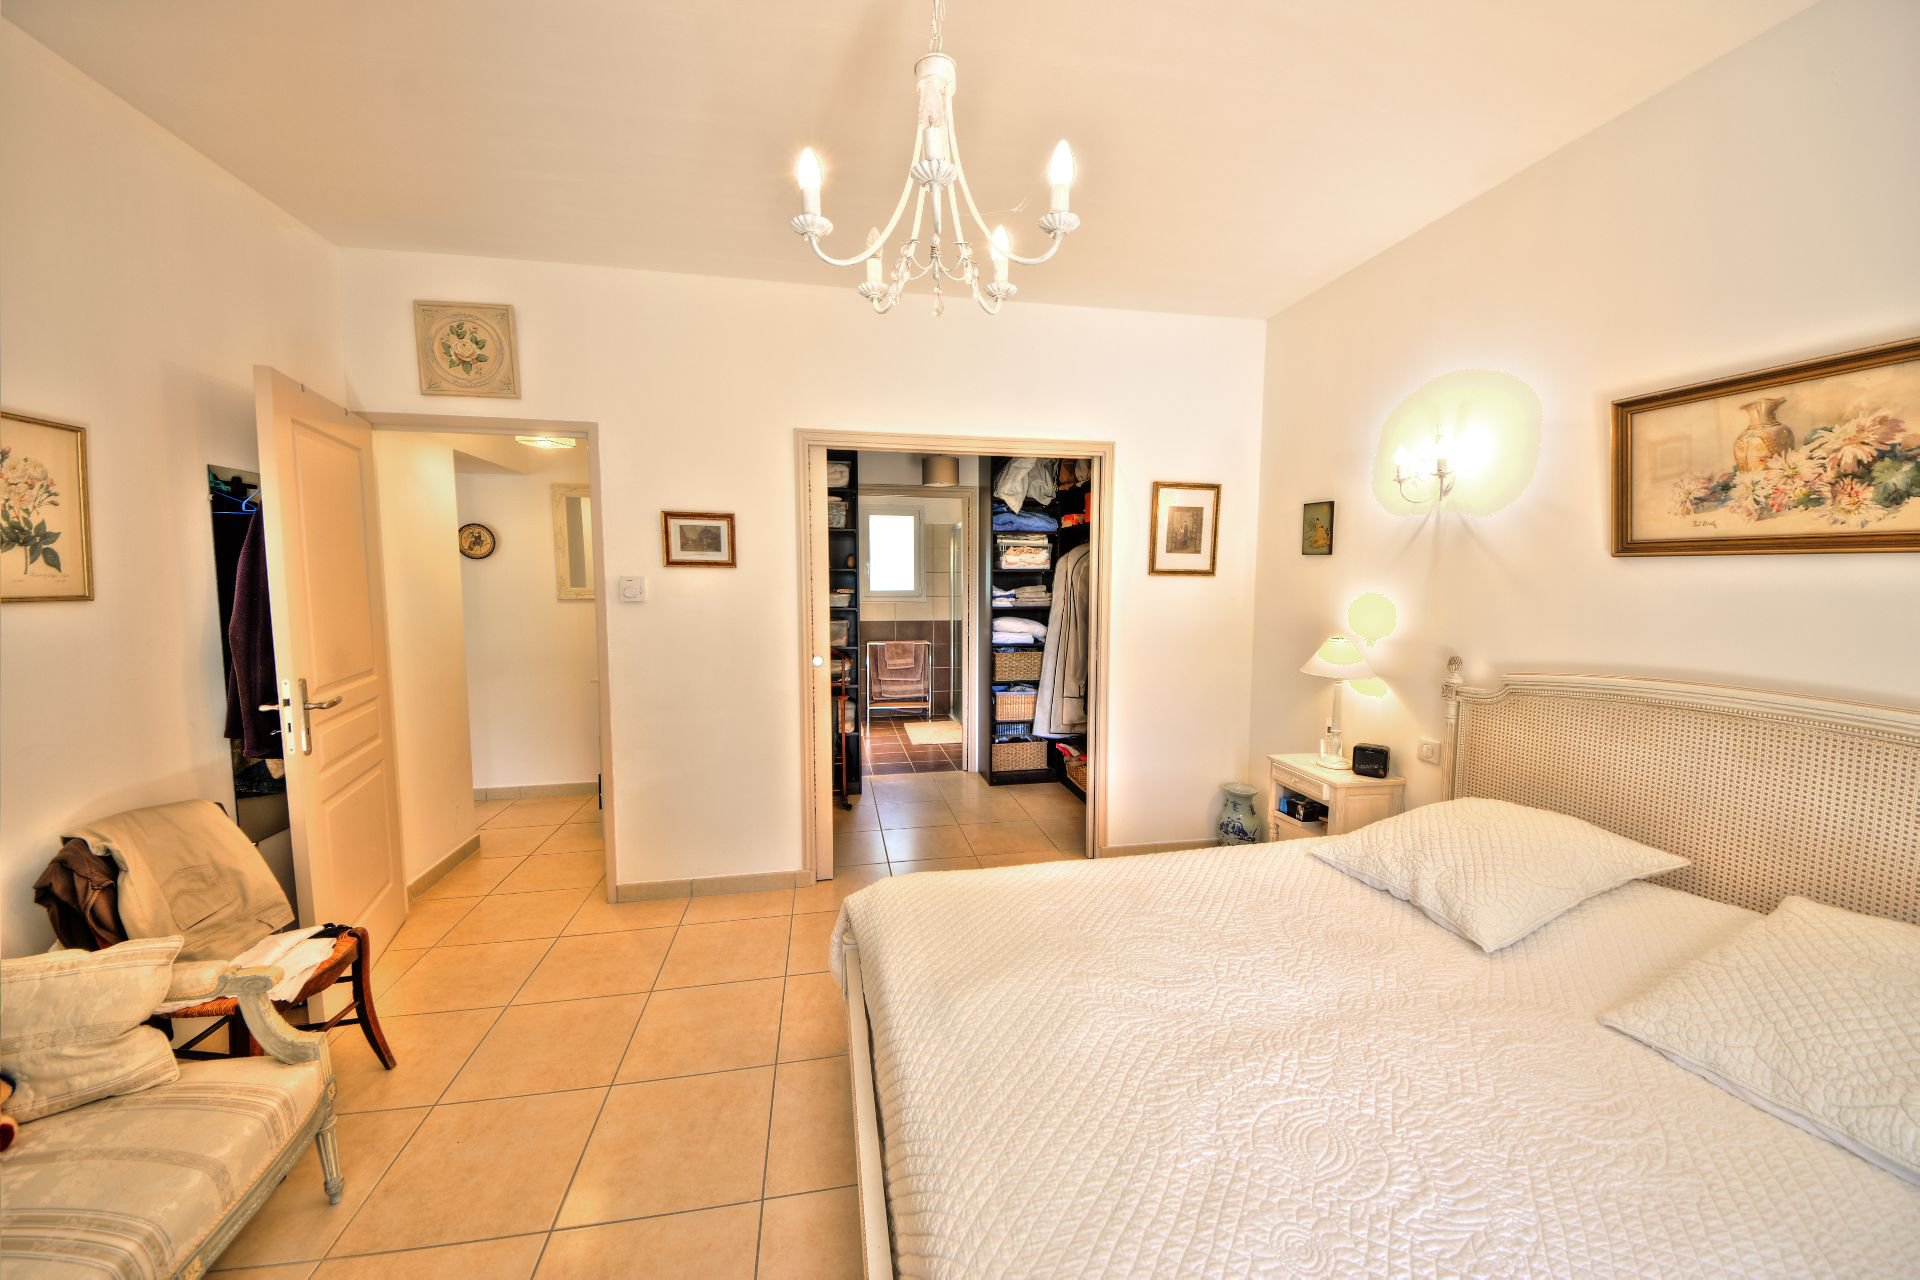 Large bedroom with terrace - quality and bright house with beautiful volumes in Moissac Bellevue Var Provence